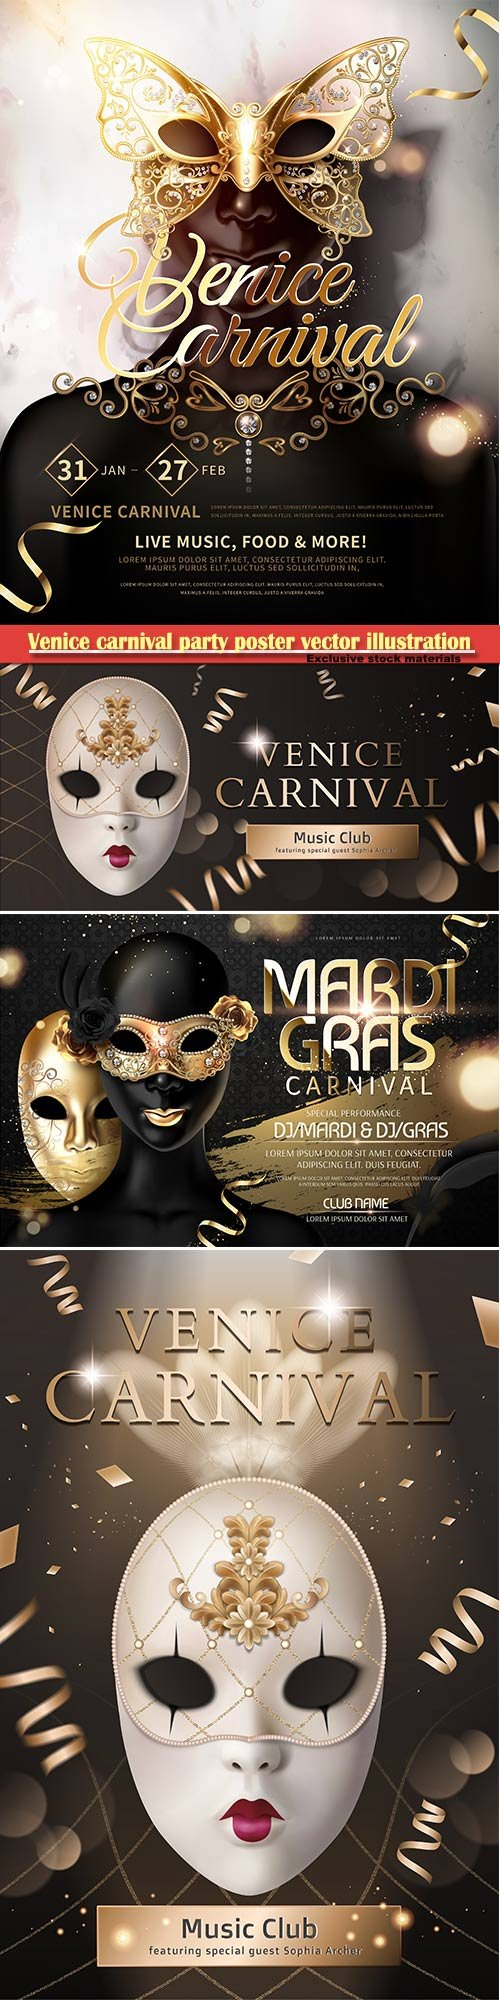 Venice carnival design vector illustration, Mardi gras # 3